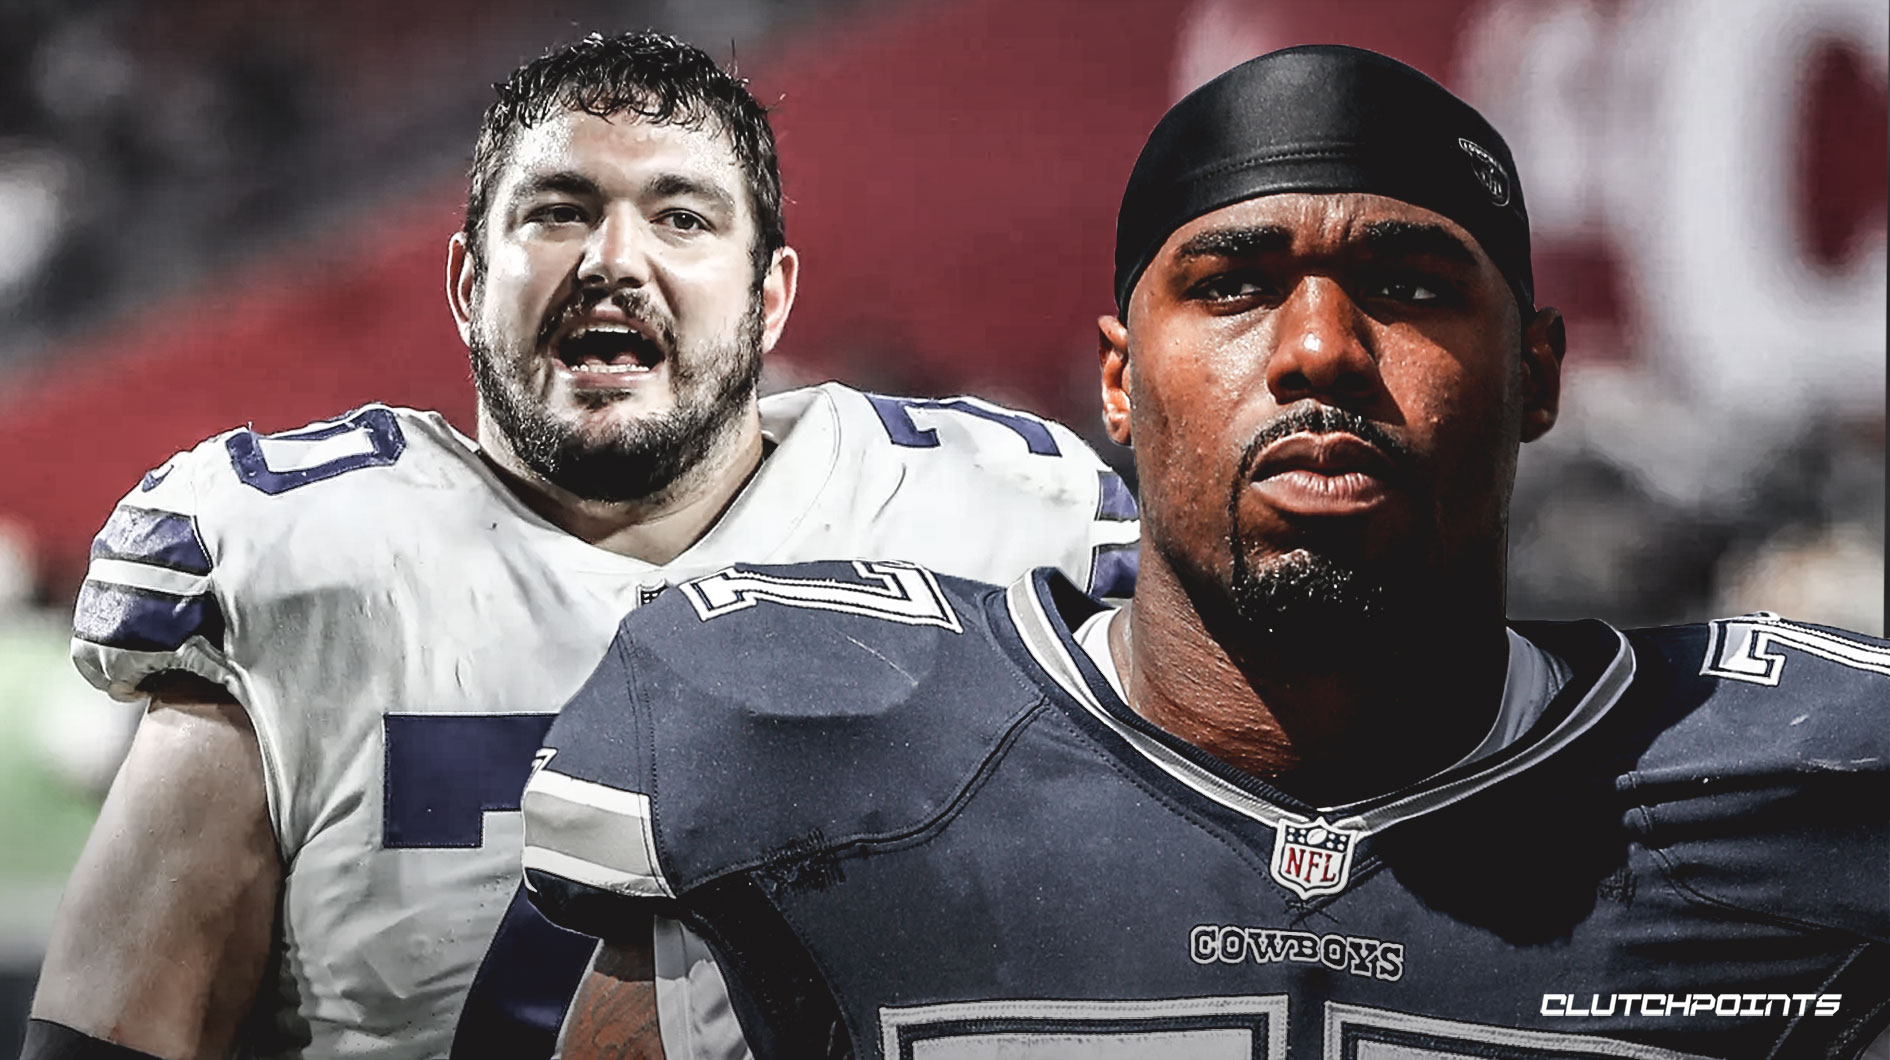 Cowboys NFL Draft Needs by Position: Is The Offensive Line Already Deep Enough?